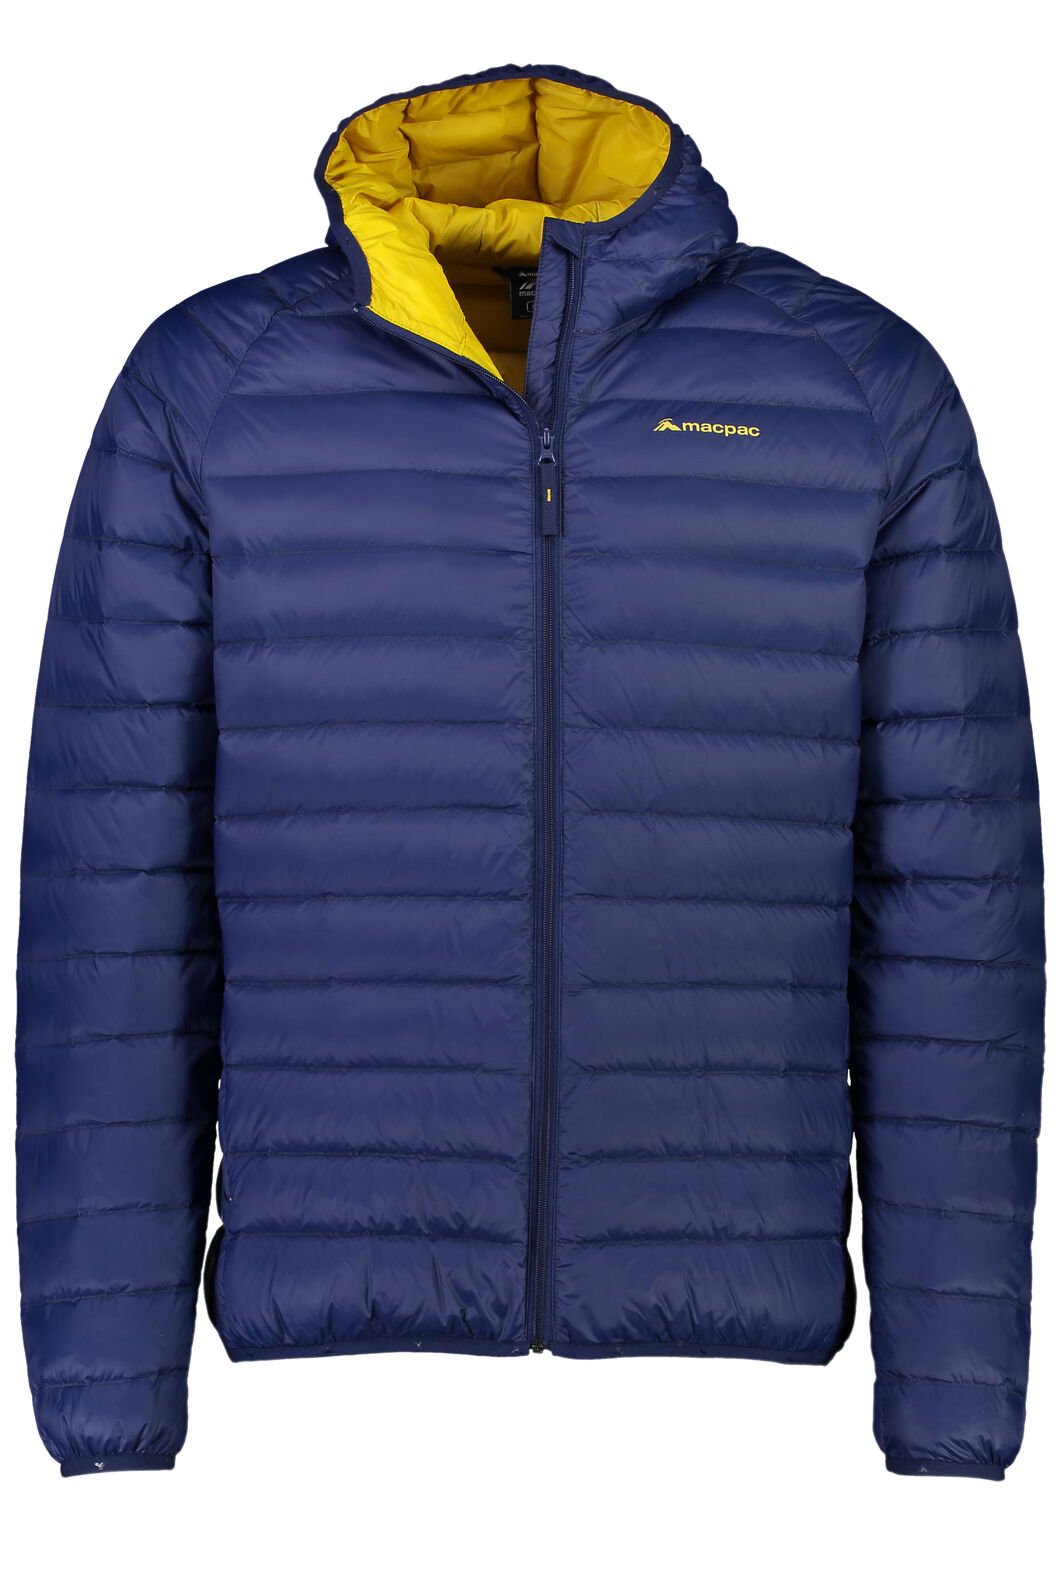 Uber Hooded Down Jacket - Men's, Medieval/Lemon Curry, hi-res